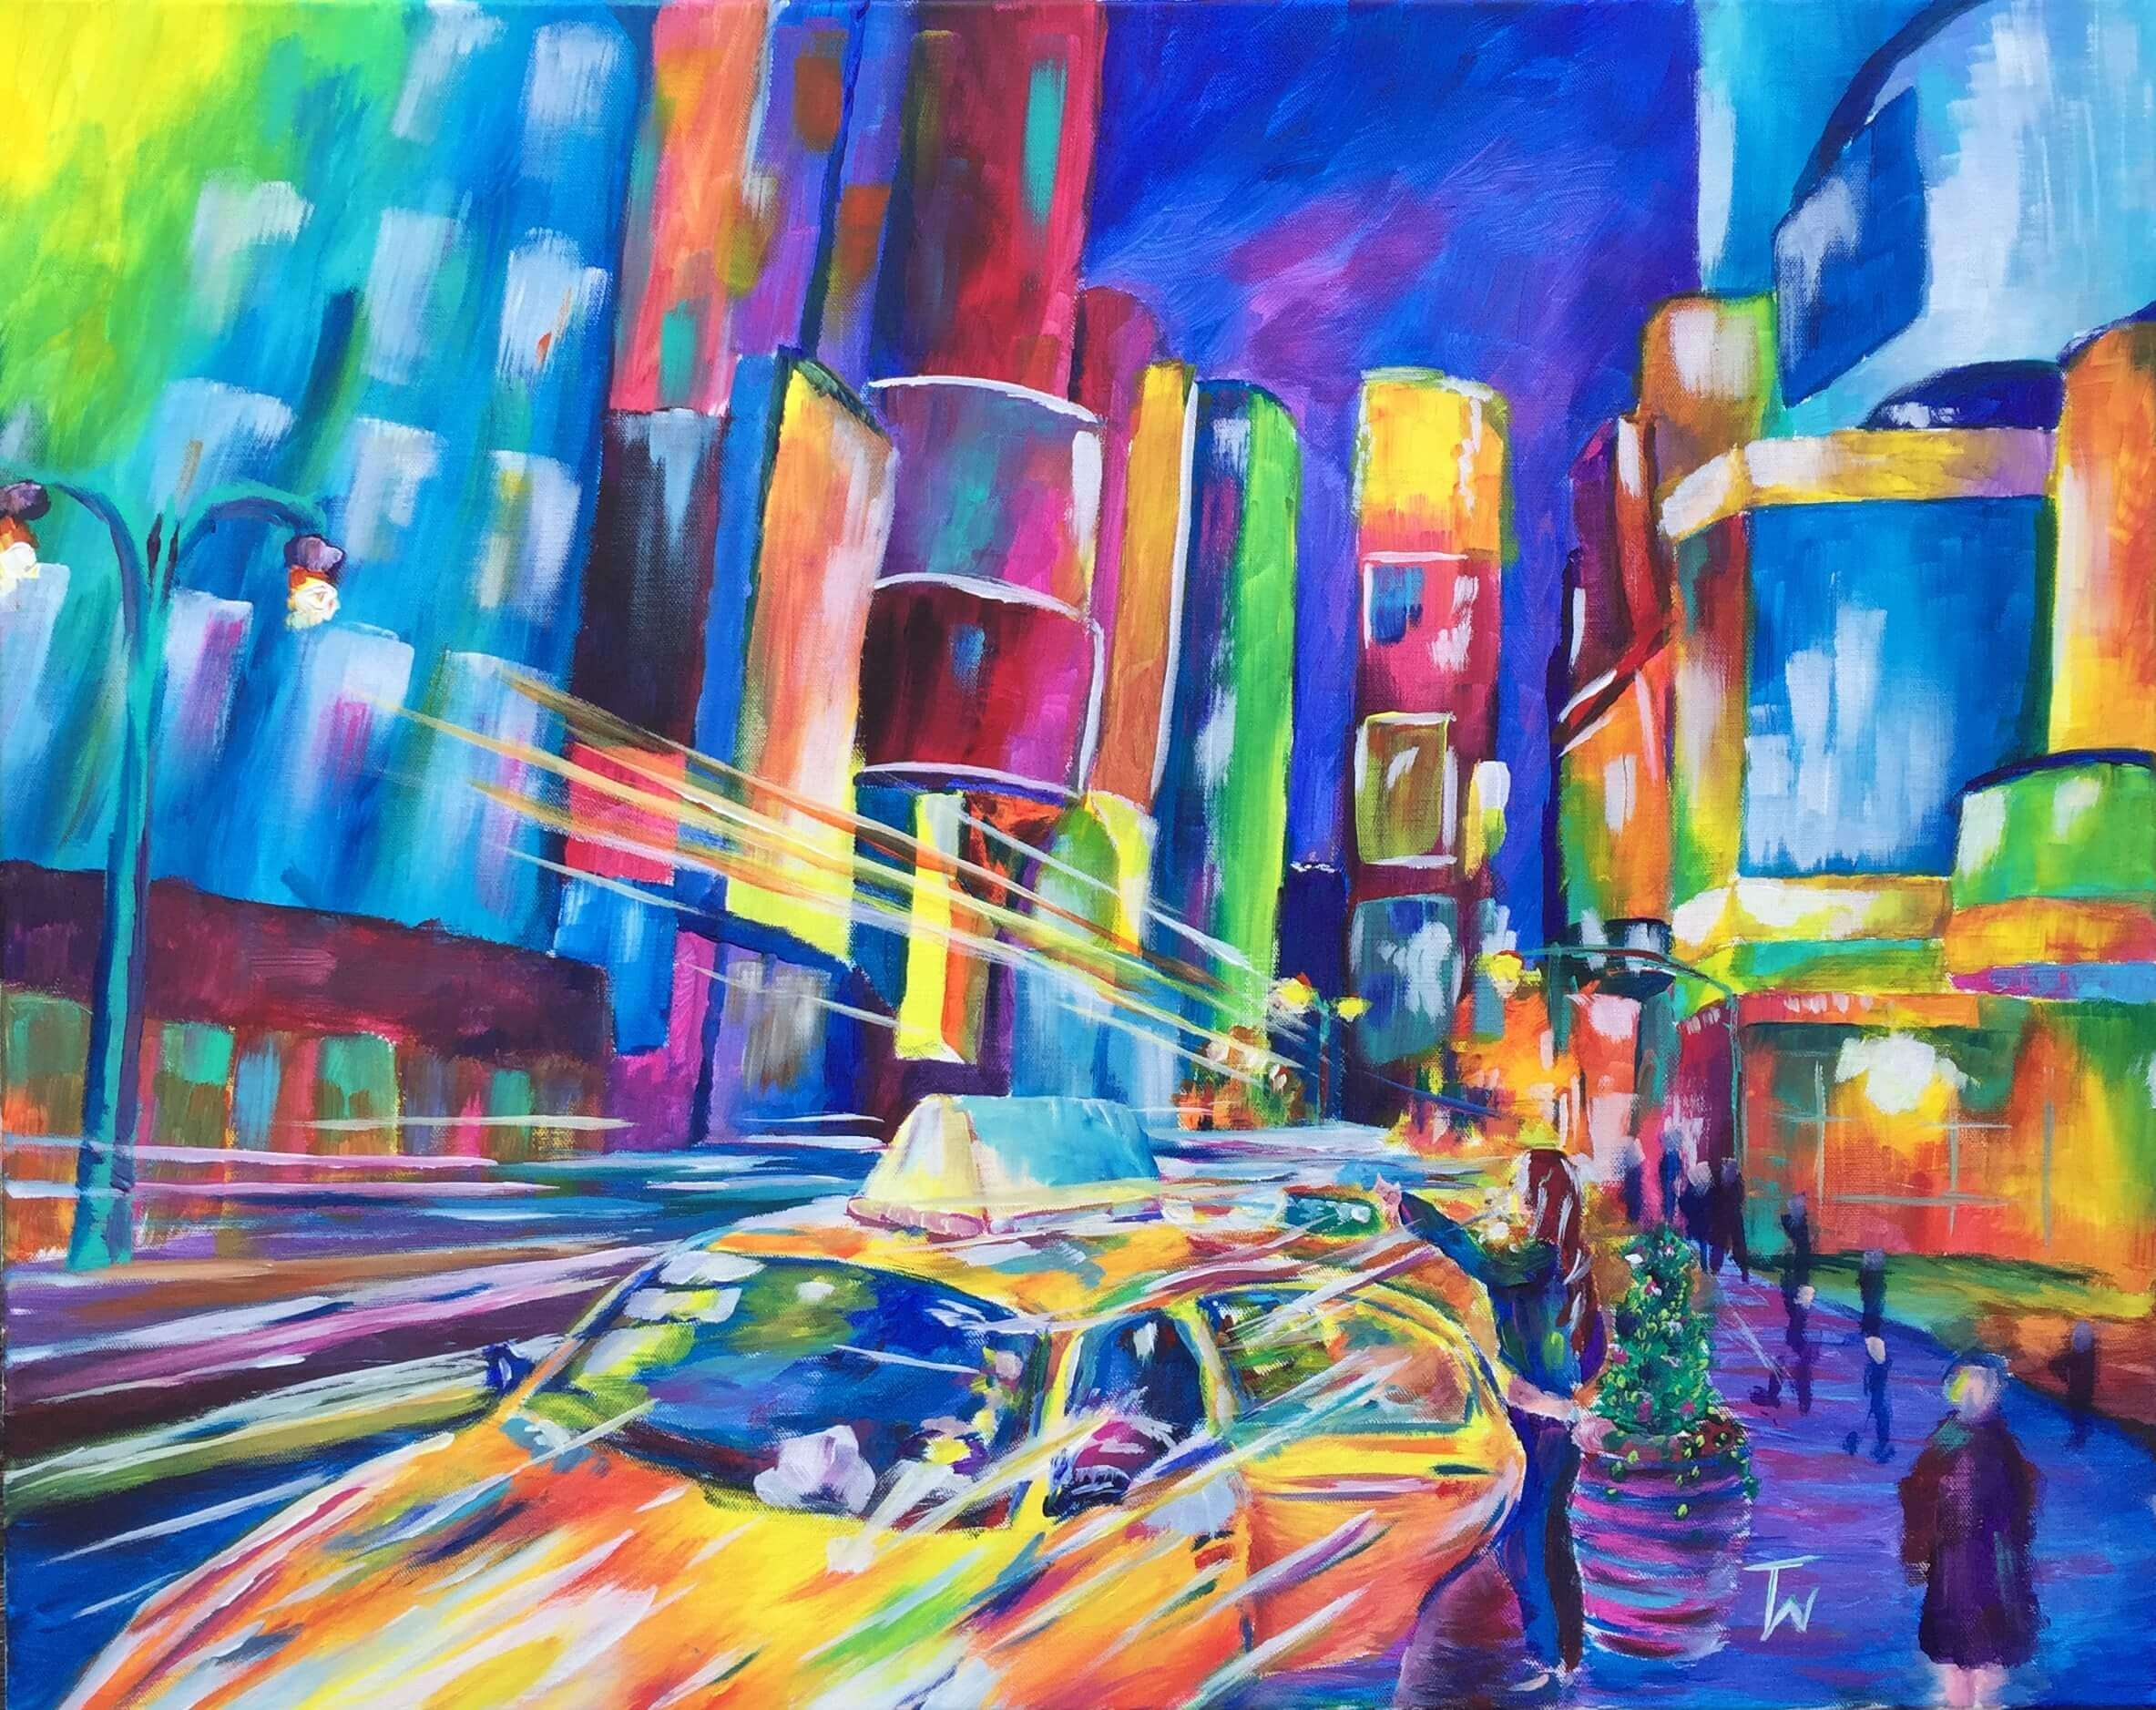 Night Life 24x30 Acrylic on Canvas by Taylor Wise